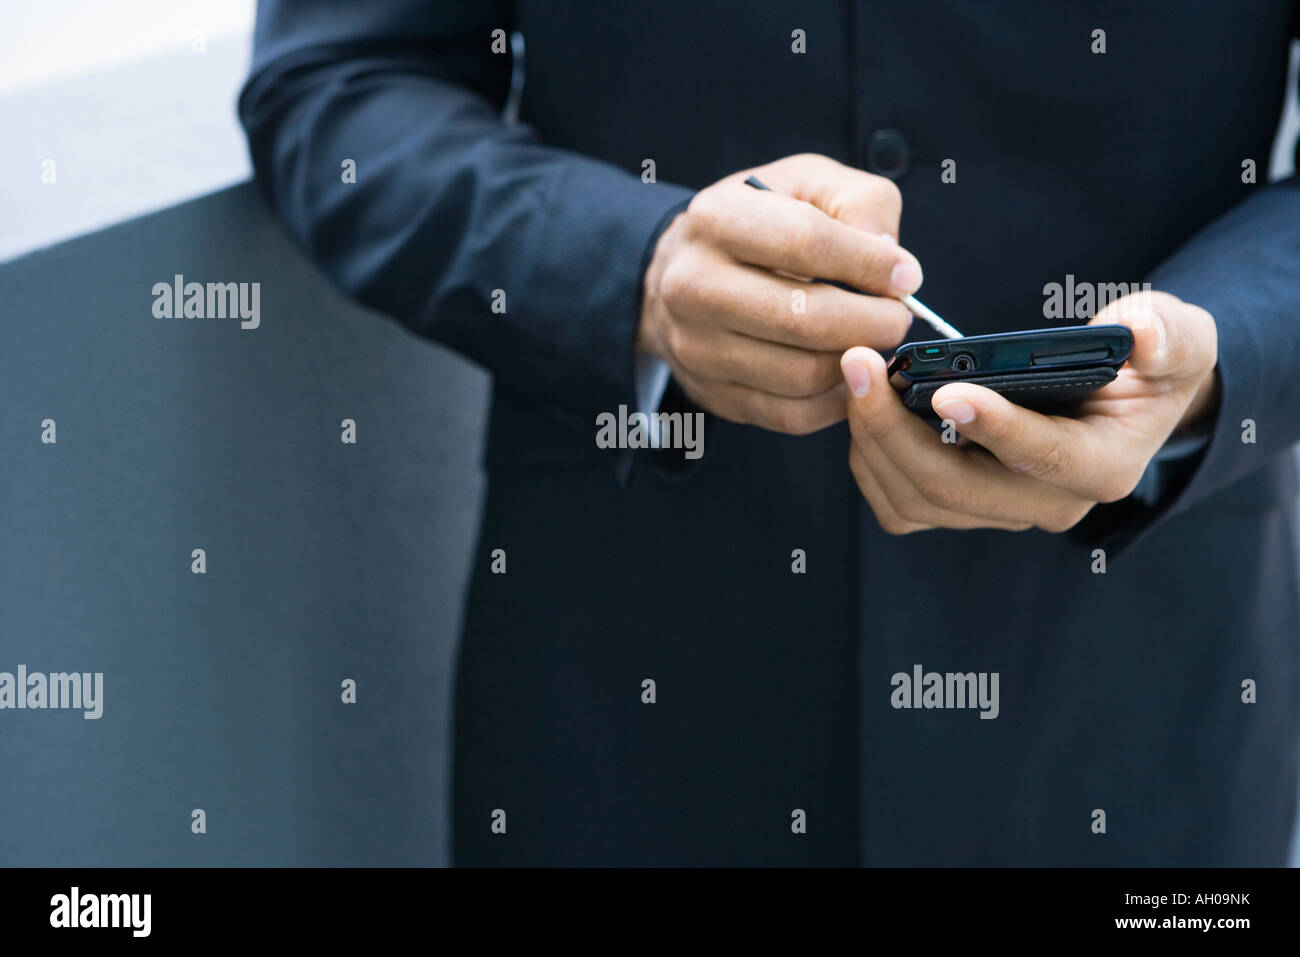 Businessman using palmtop, cropped view of hands - Stock Image